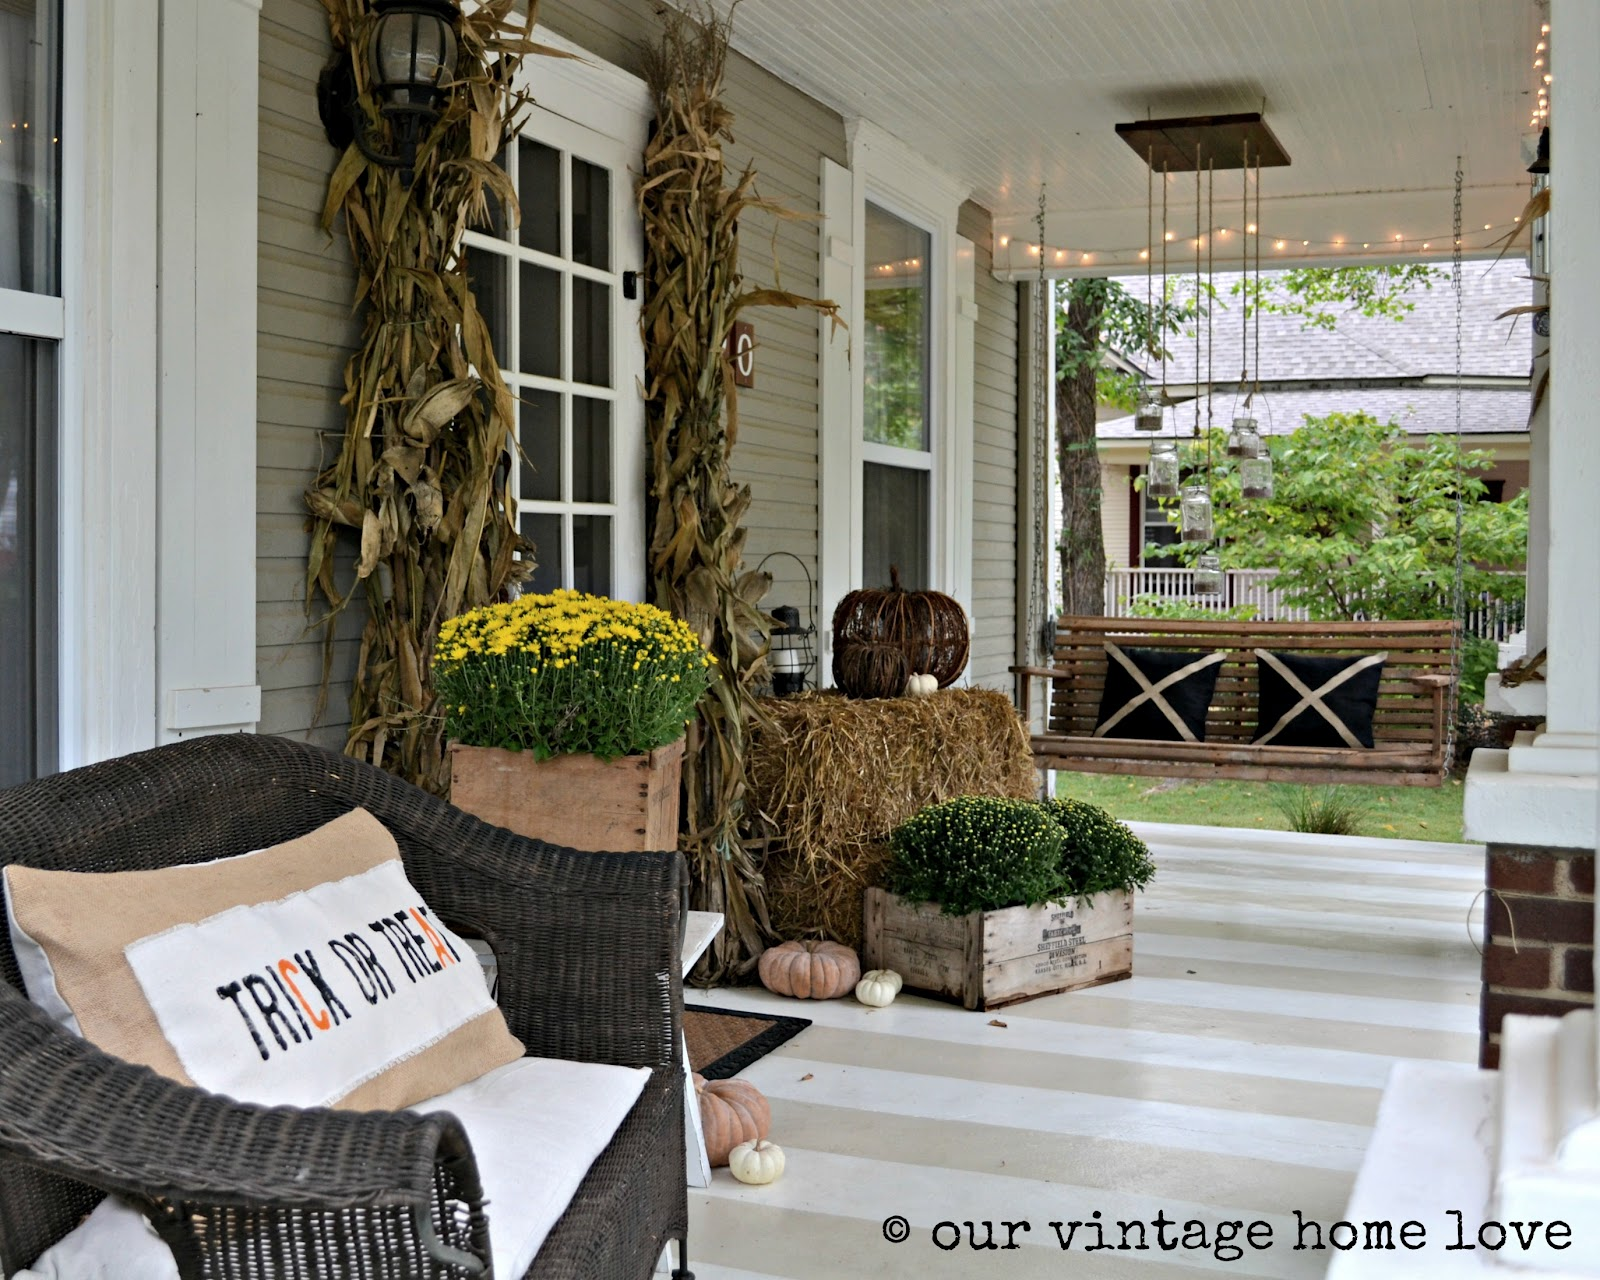 Vintage home love autumn porch ideas Front veranda decorating ideas